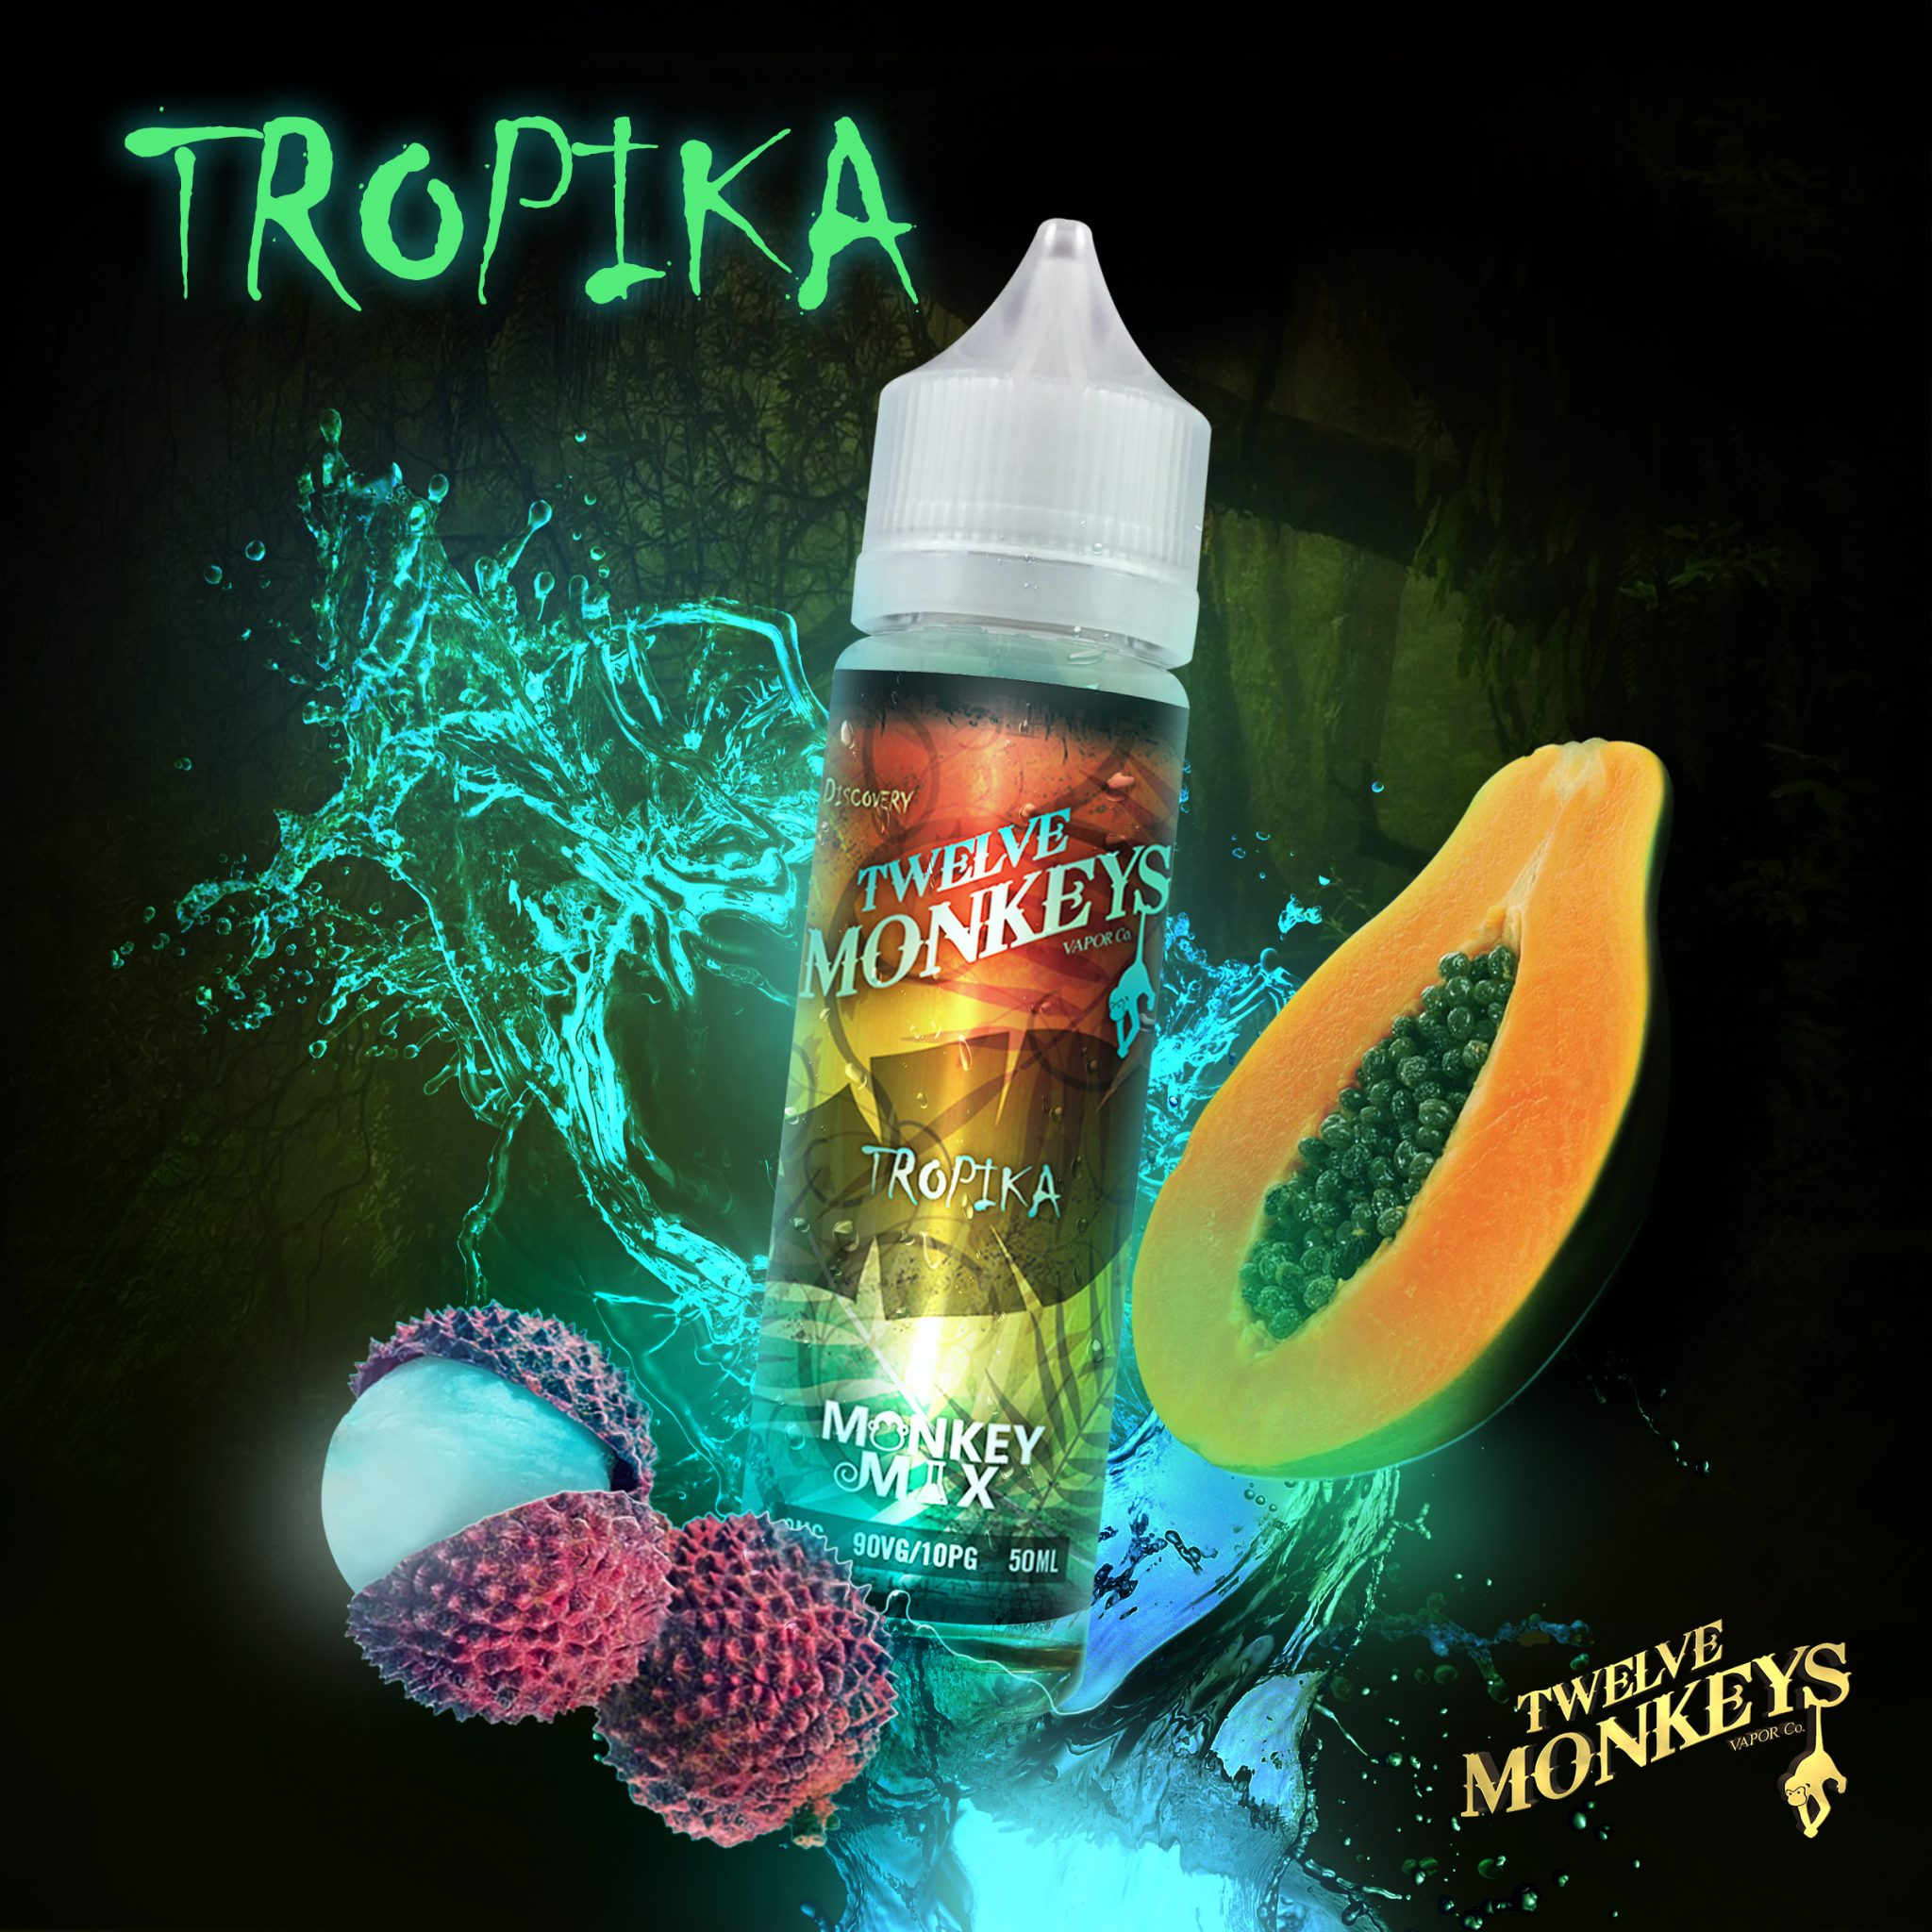 M TROPIKA MonkeyMix splash